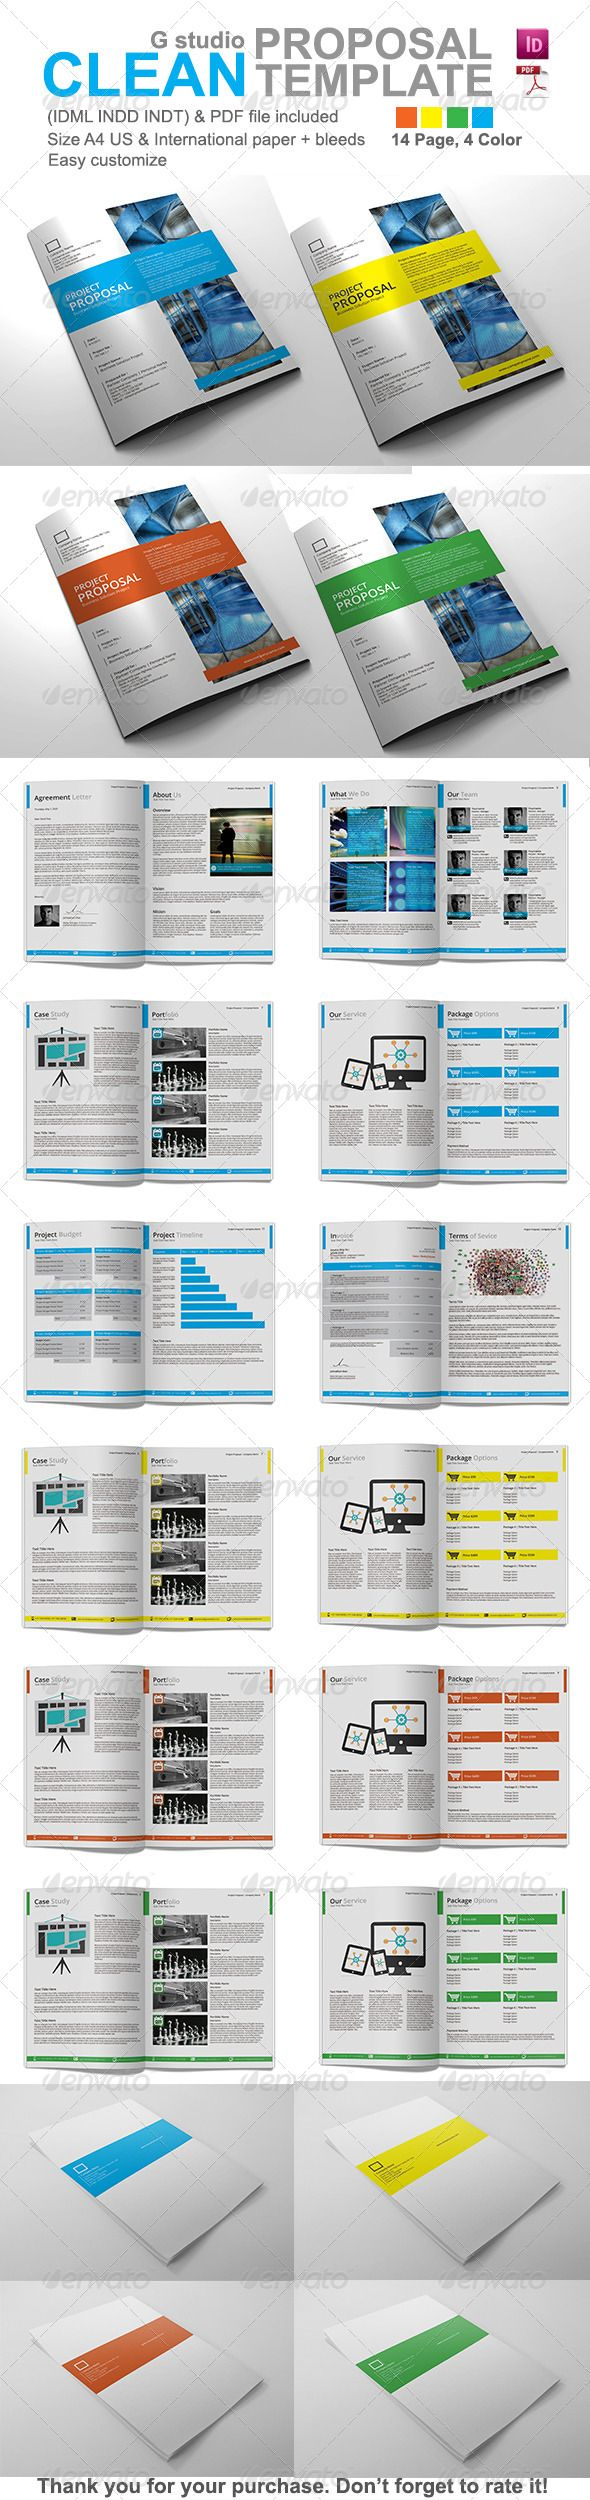 Commercial Proposal Format Brilliant 504 Best Business Proposal Images On Pinterest  Proposal Templates .